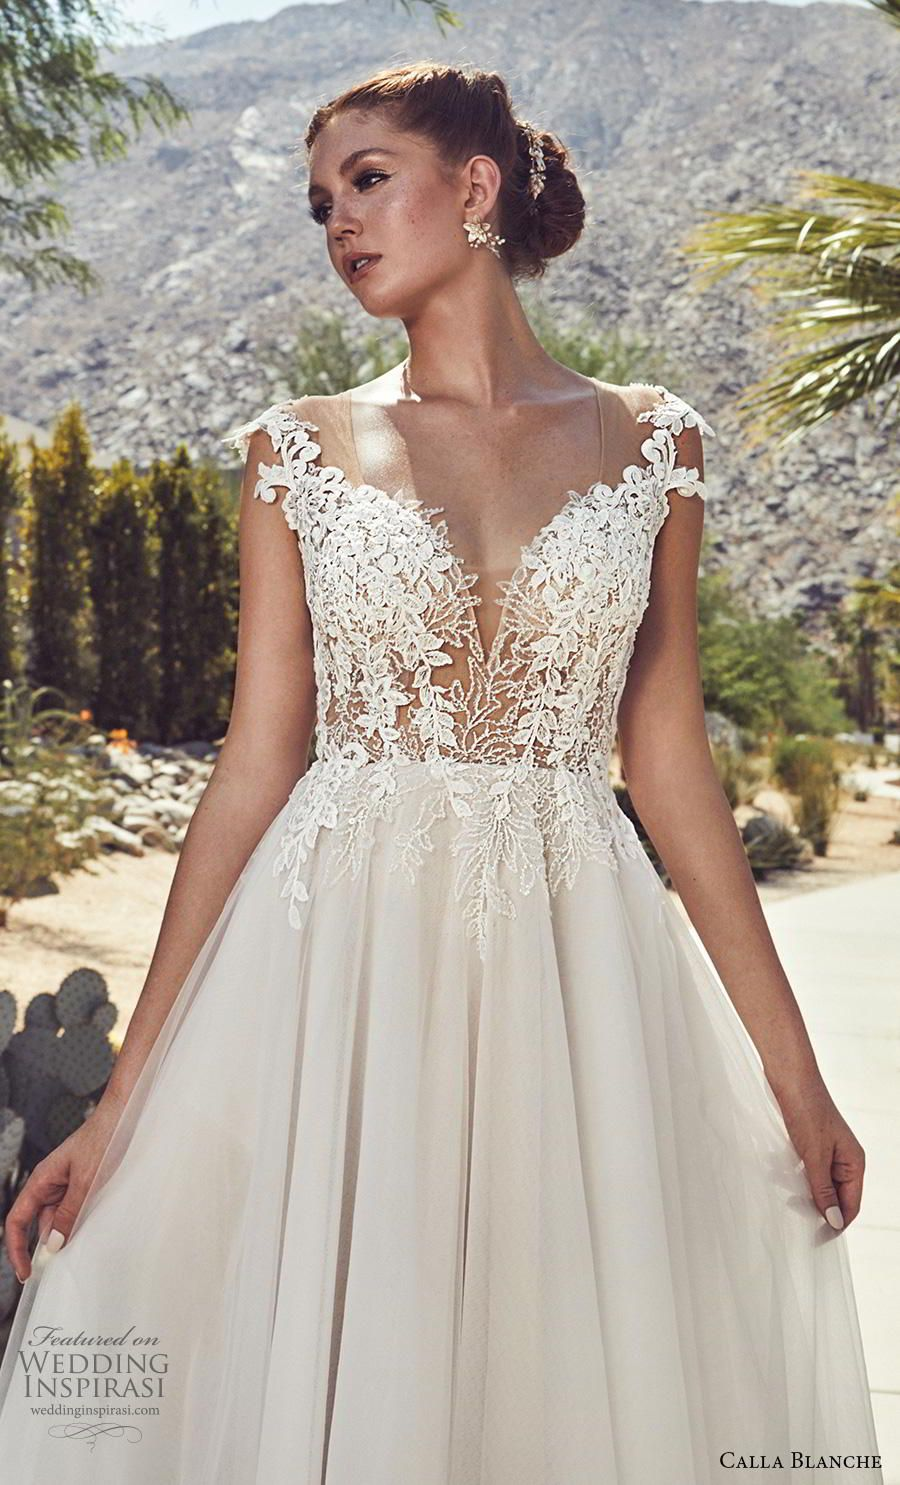 L'amour by Calla Blanche Spring 20 Wedding Dresses   Wedding ...